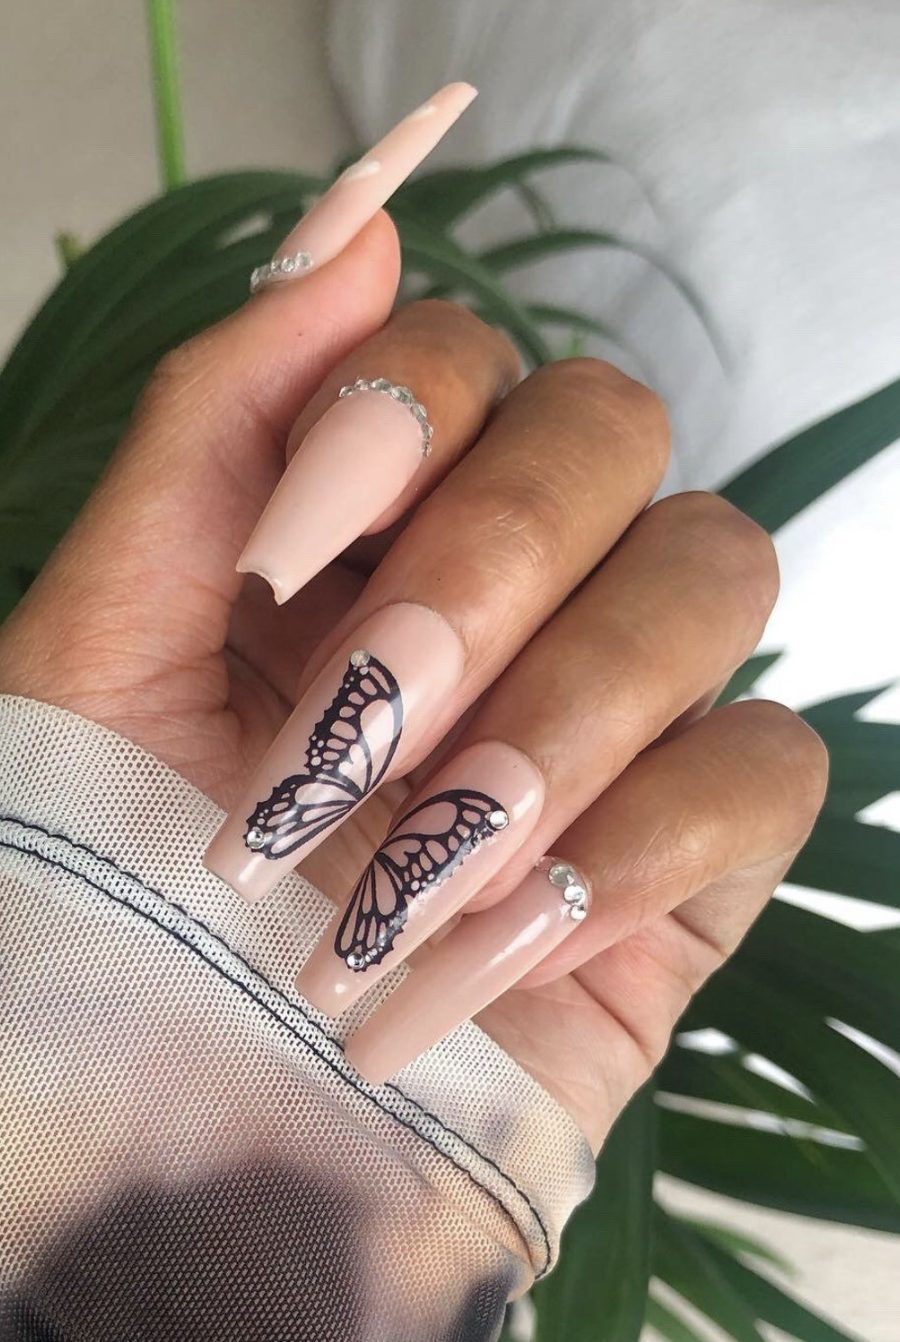 Pink acrylic coffin butterfly nails